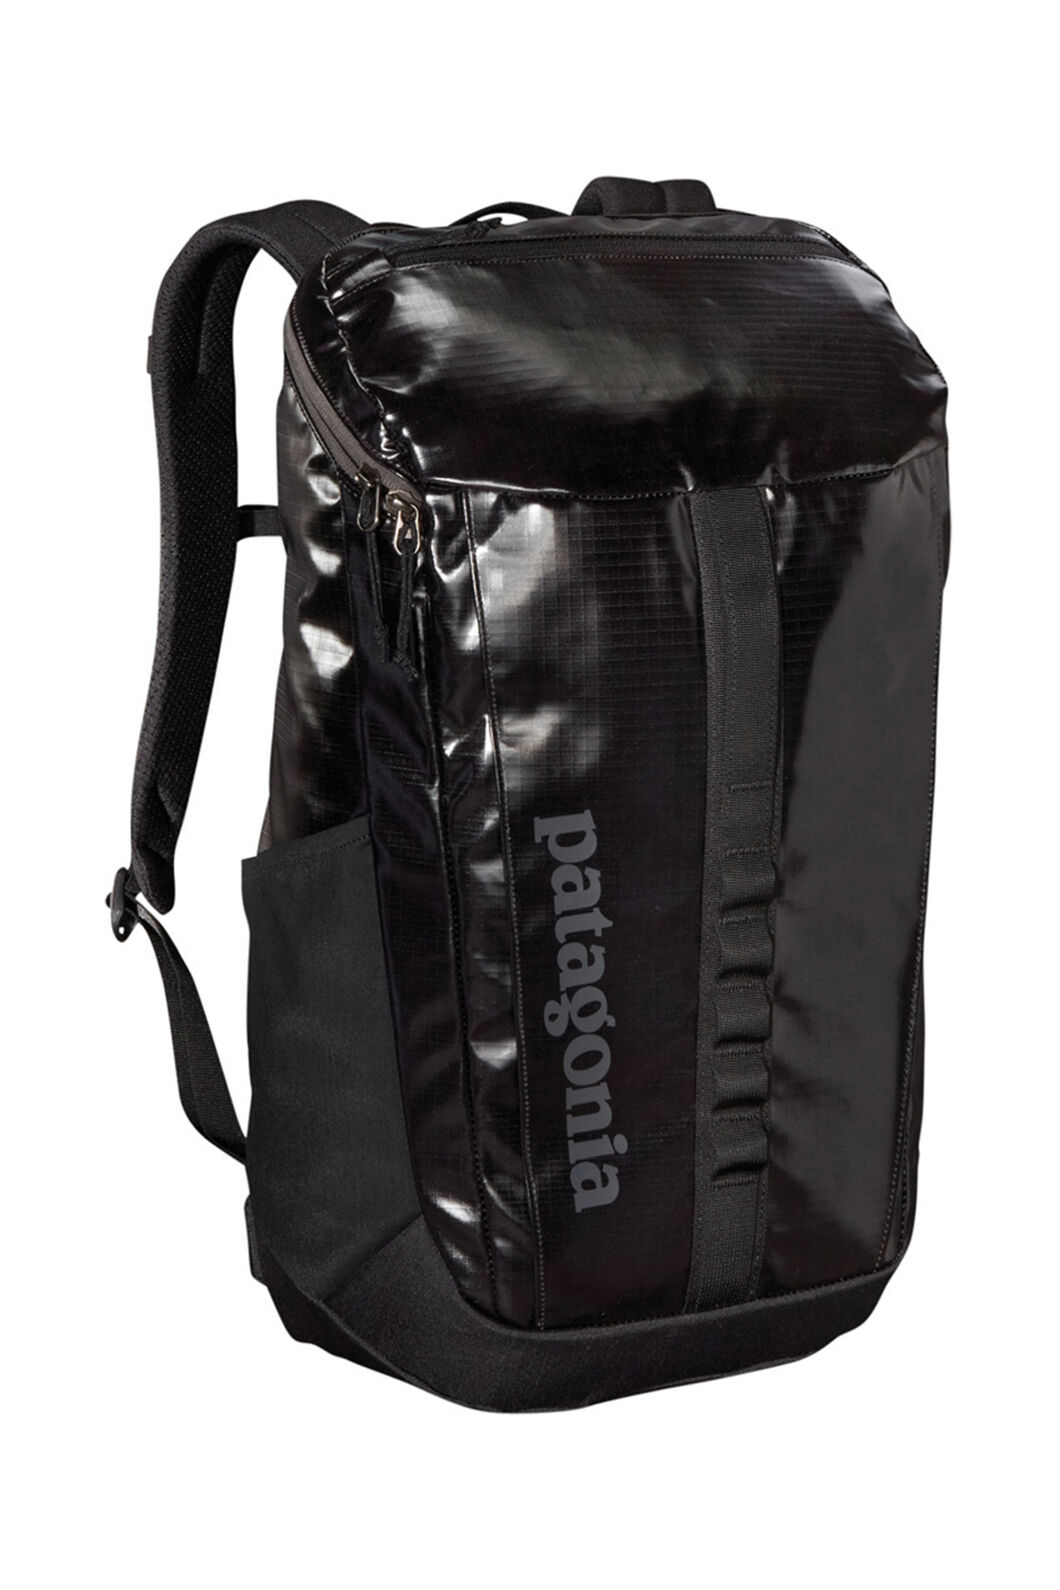 Patagonia  Hole Daypack, None, hi-res